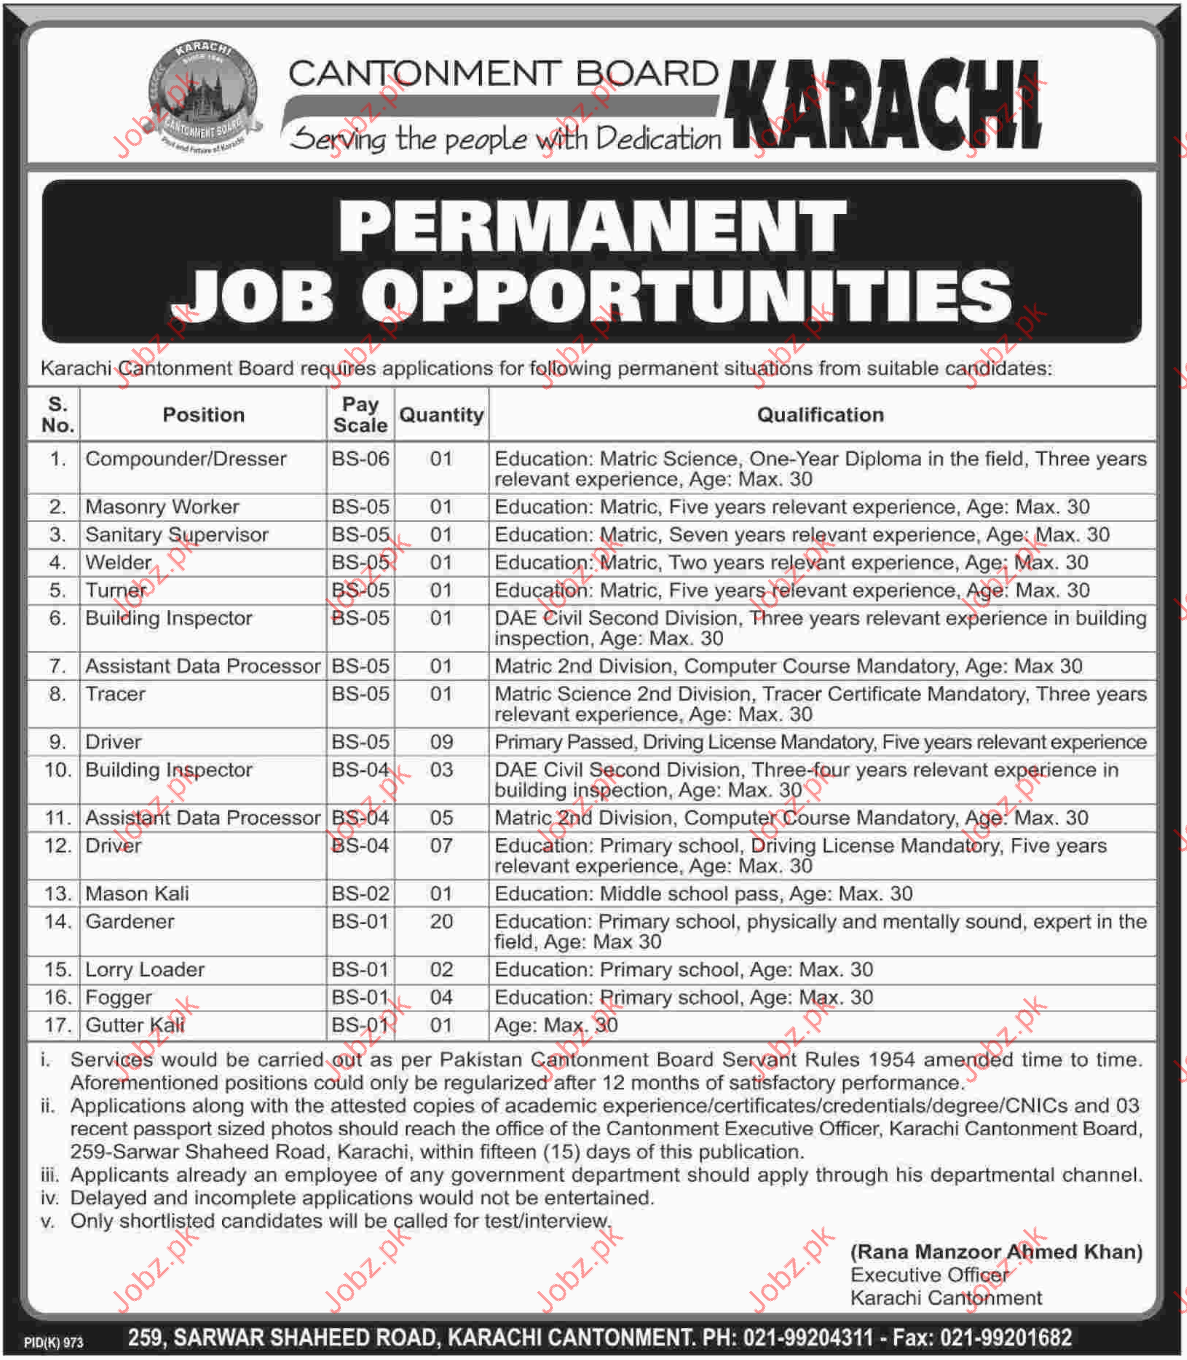 Clerical Staff Required for Karachi Cantonment Board